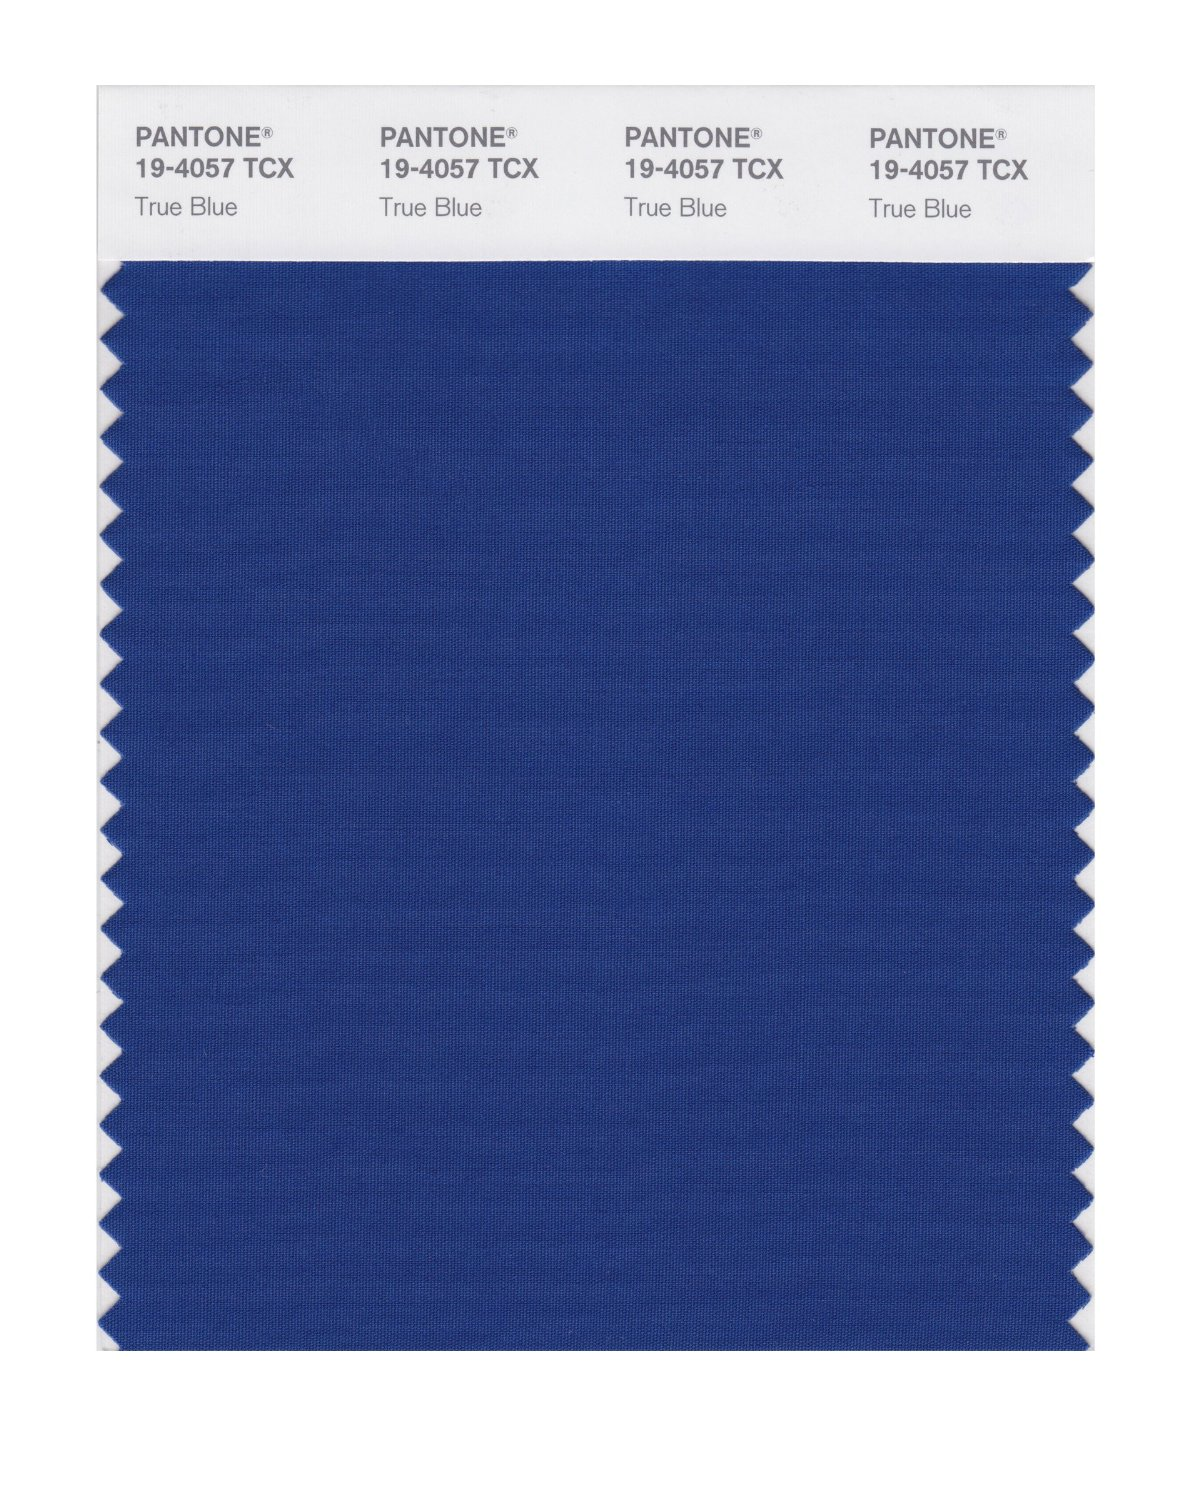 Pantone Smart Swatch 19-4057 True Blue